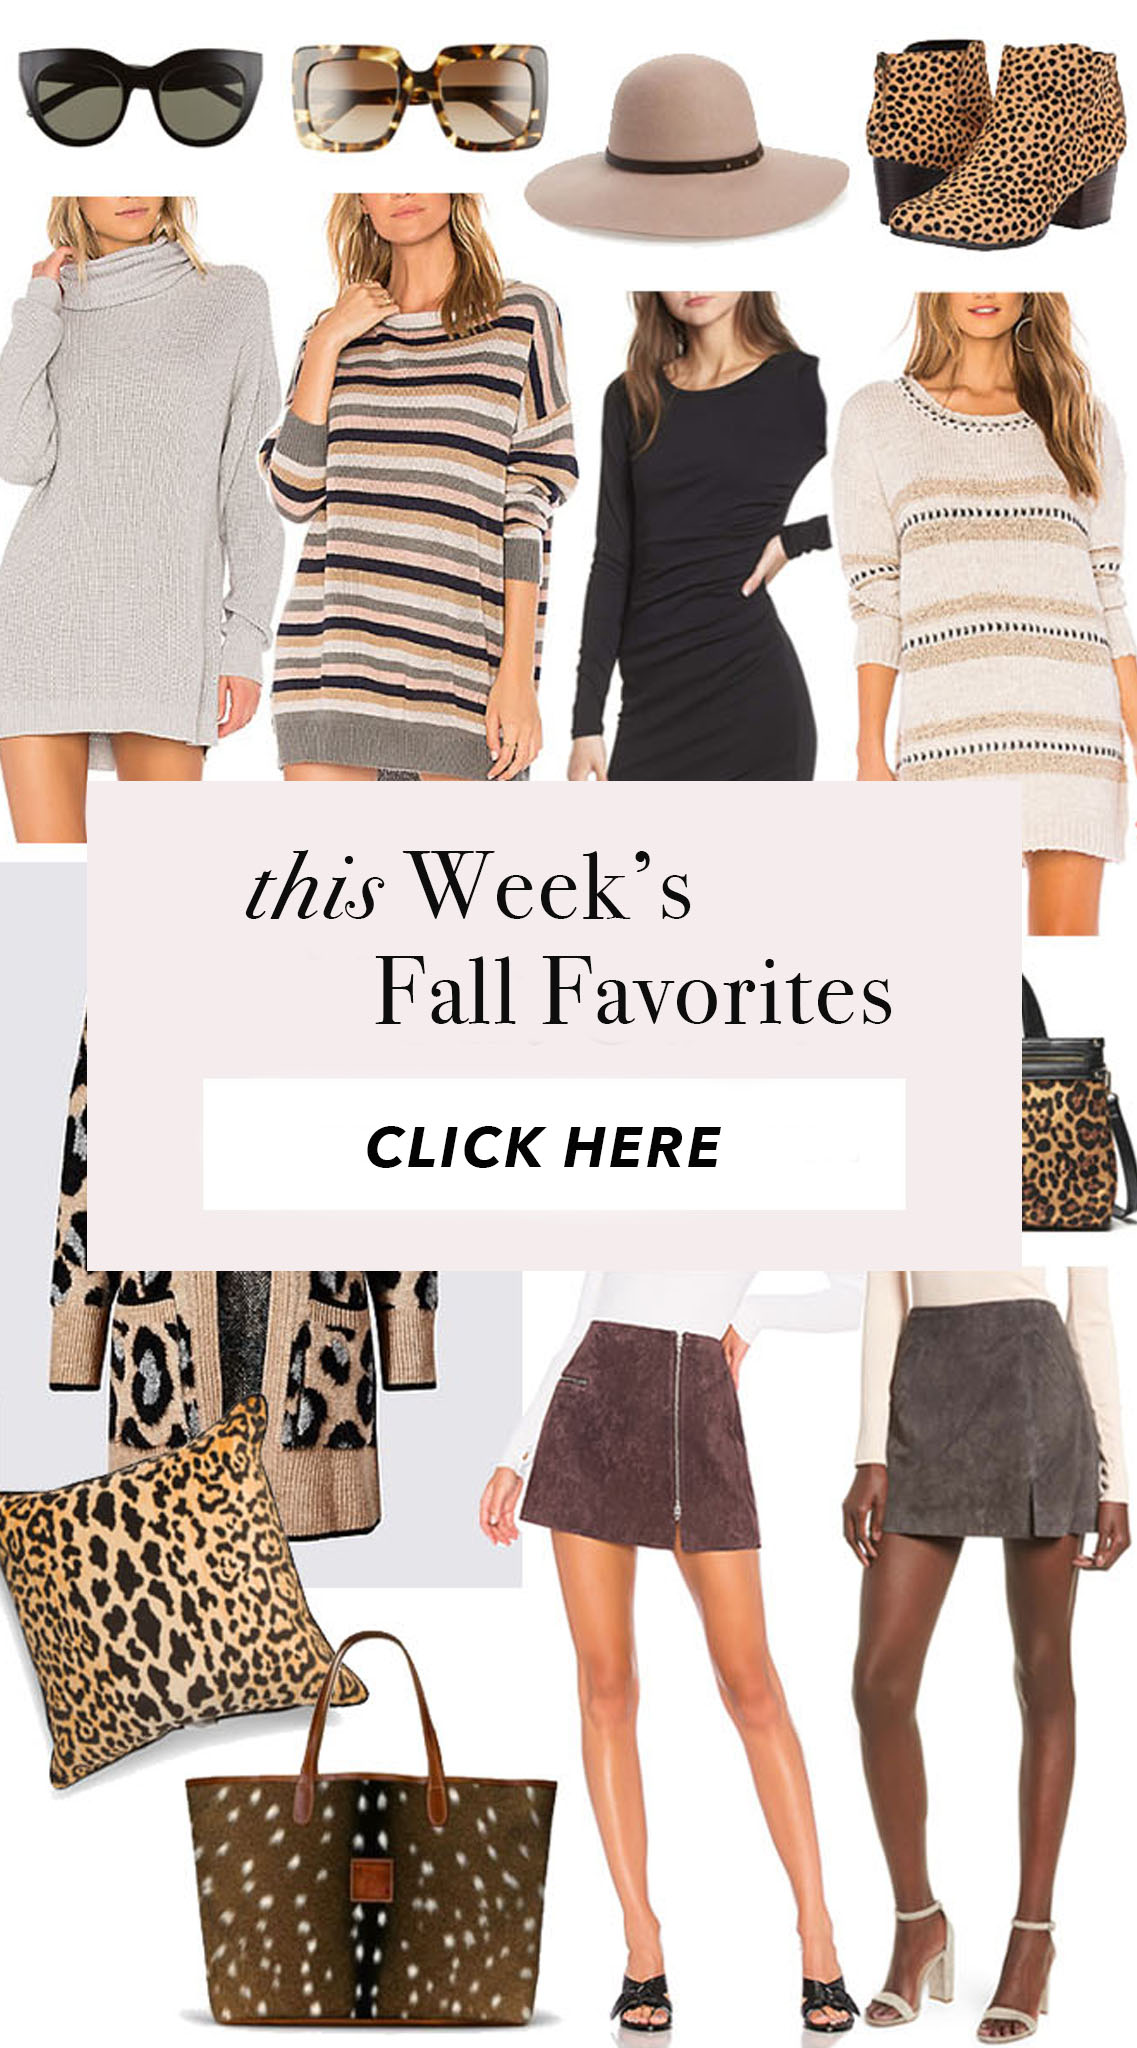 Animal Print Essentials for Fall